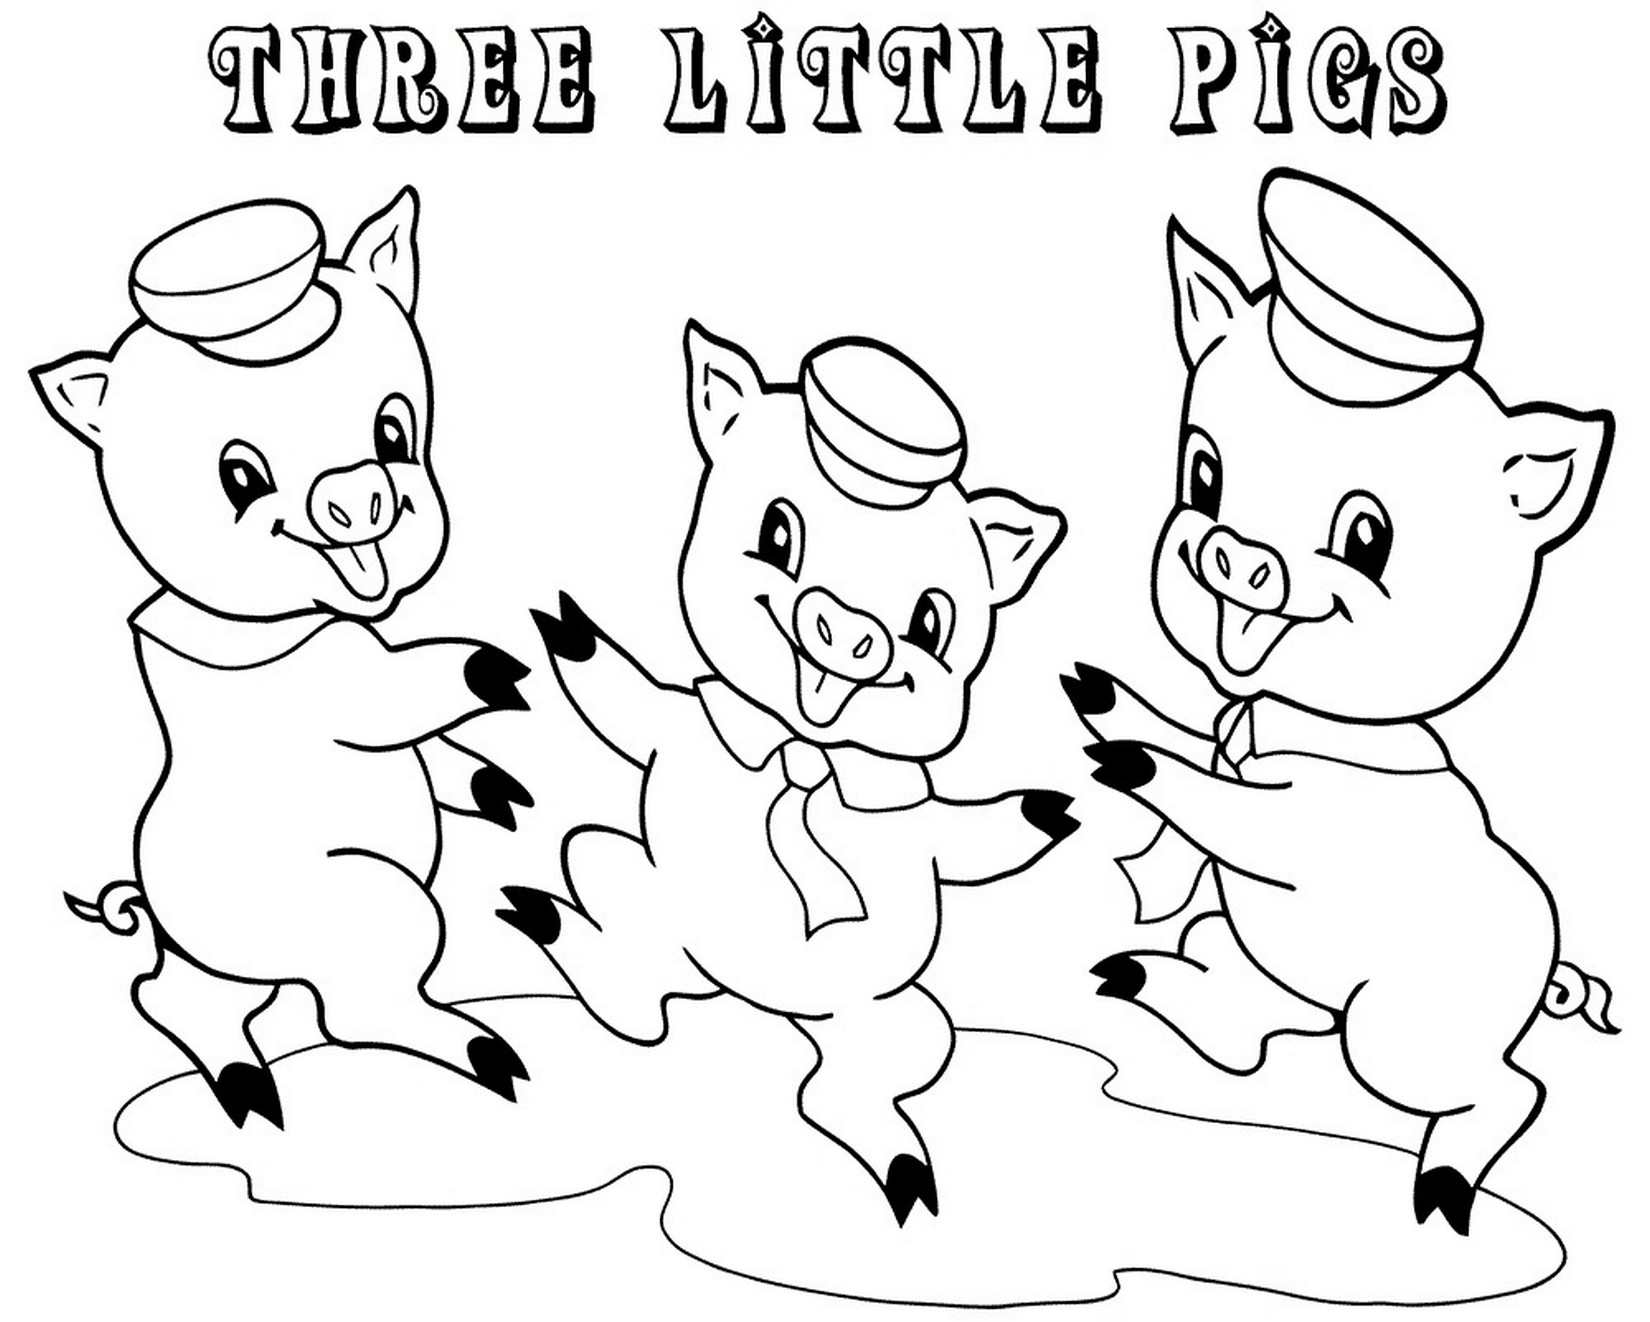 Three Little Pigs Coloring Pages For Preschool Fun Learning Printable